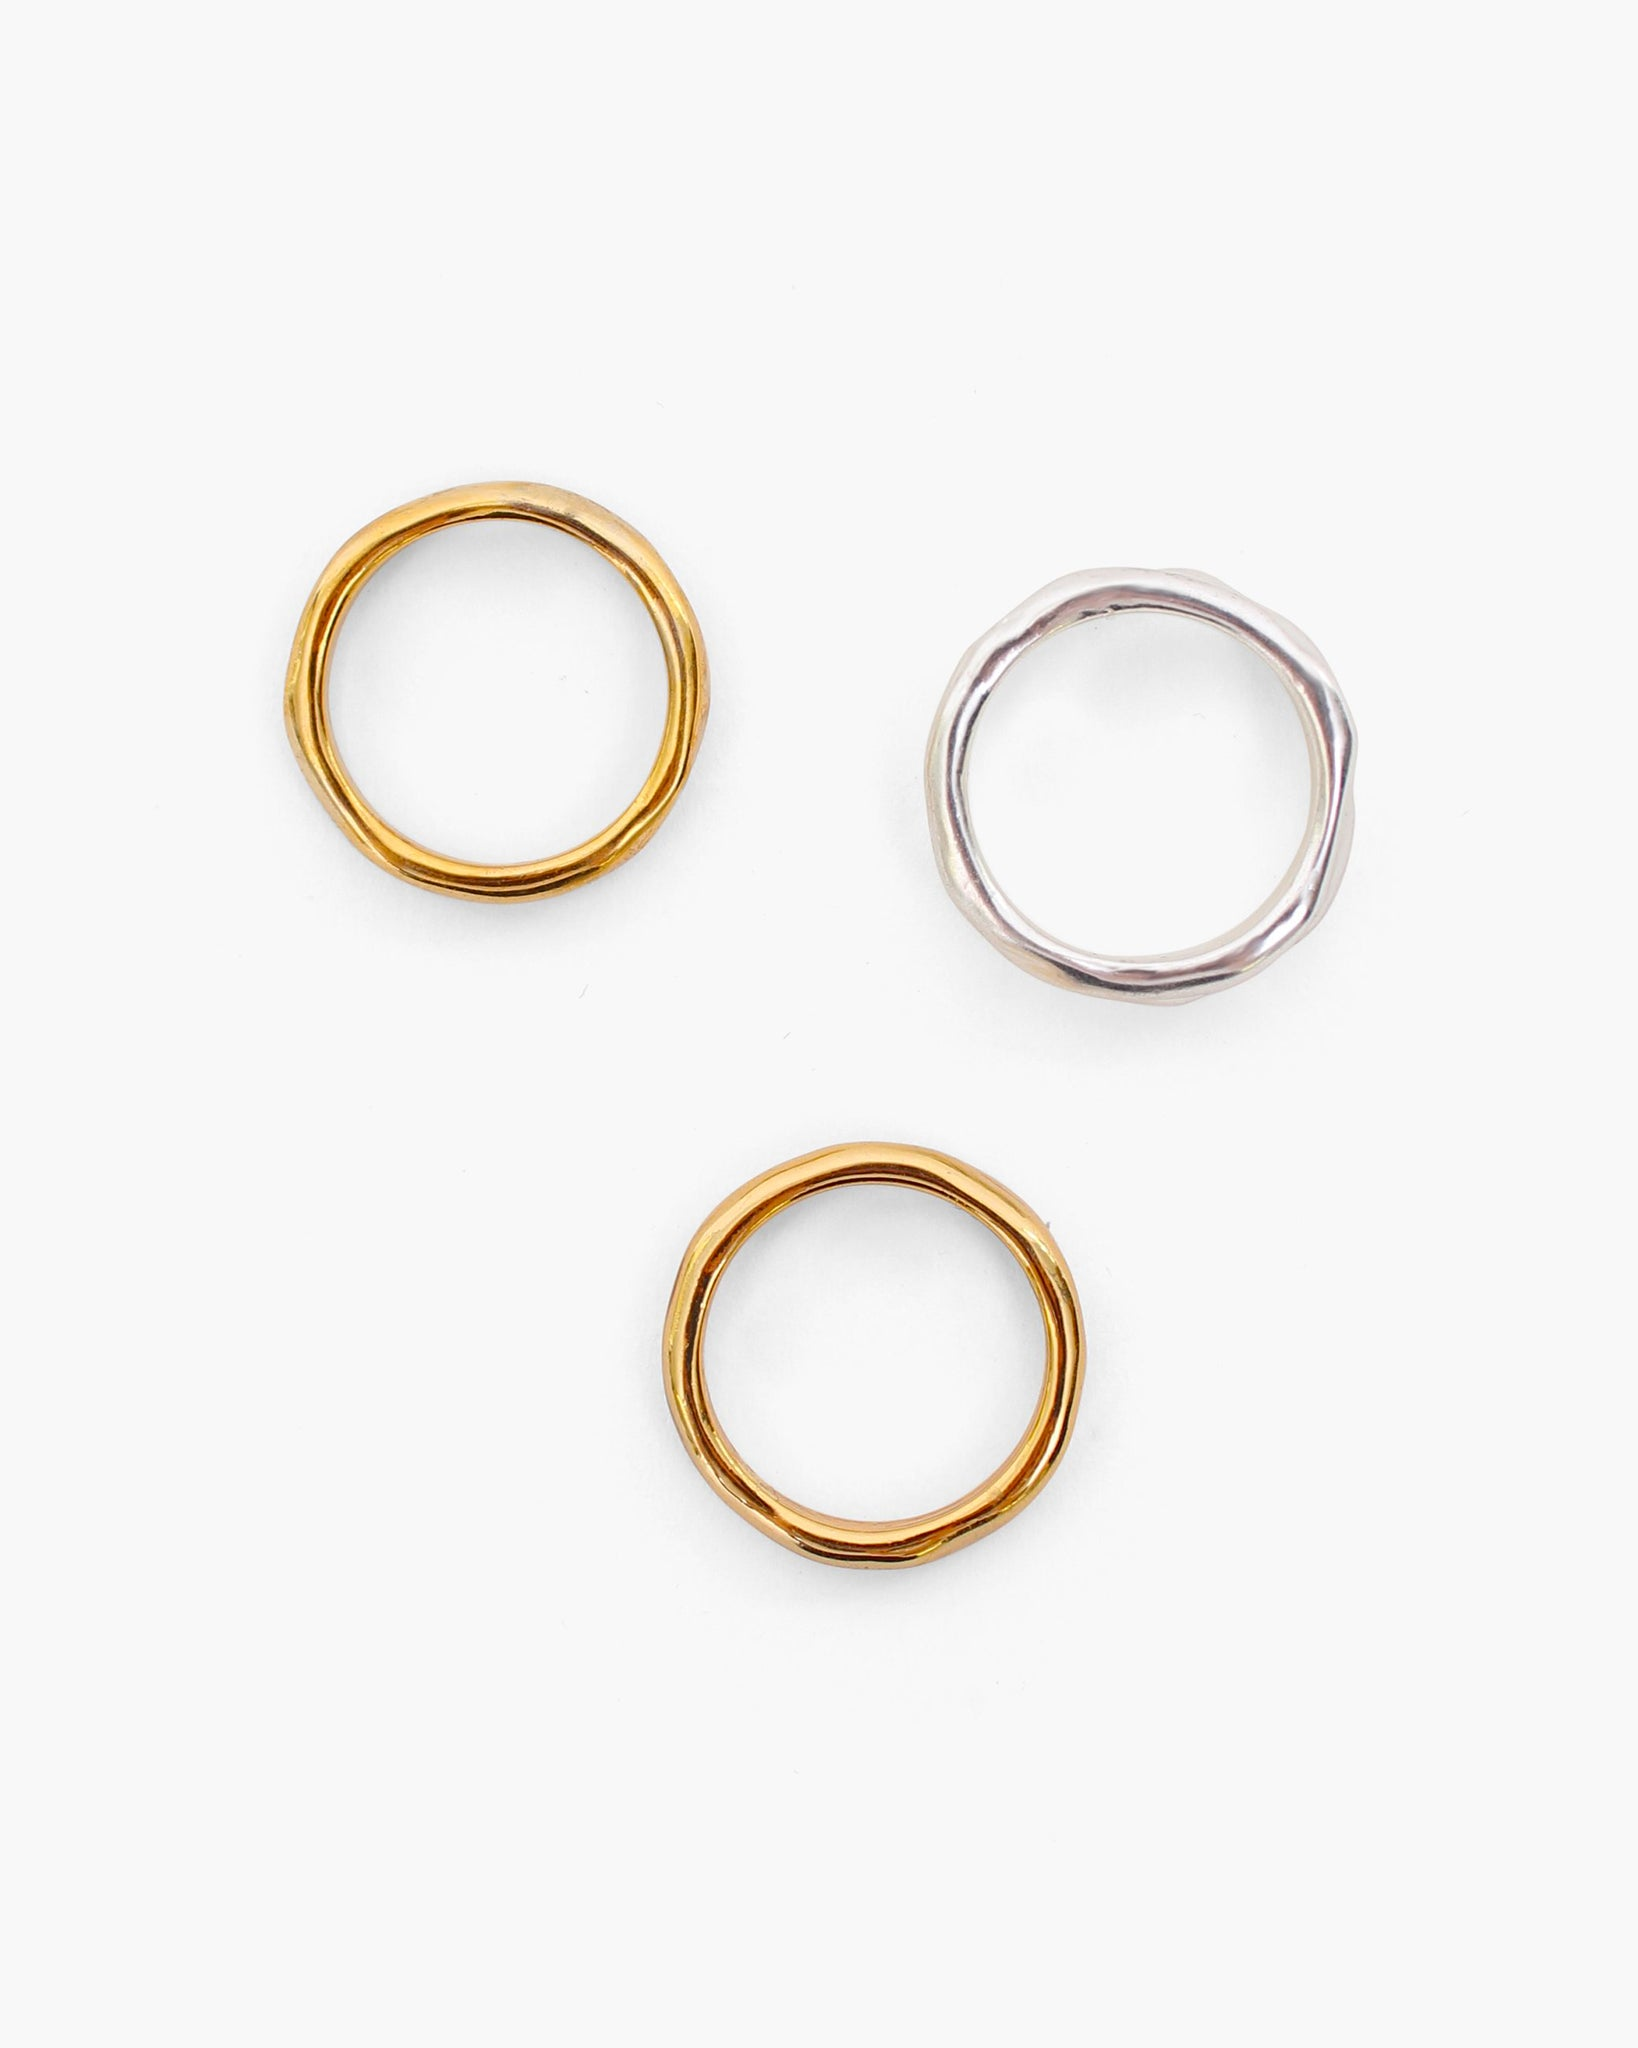 Sonia Trio Ring Gold + Silver Plated